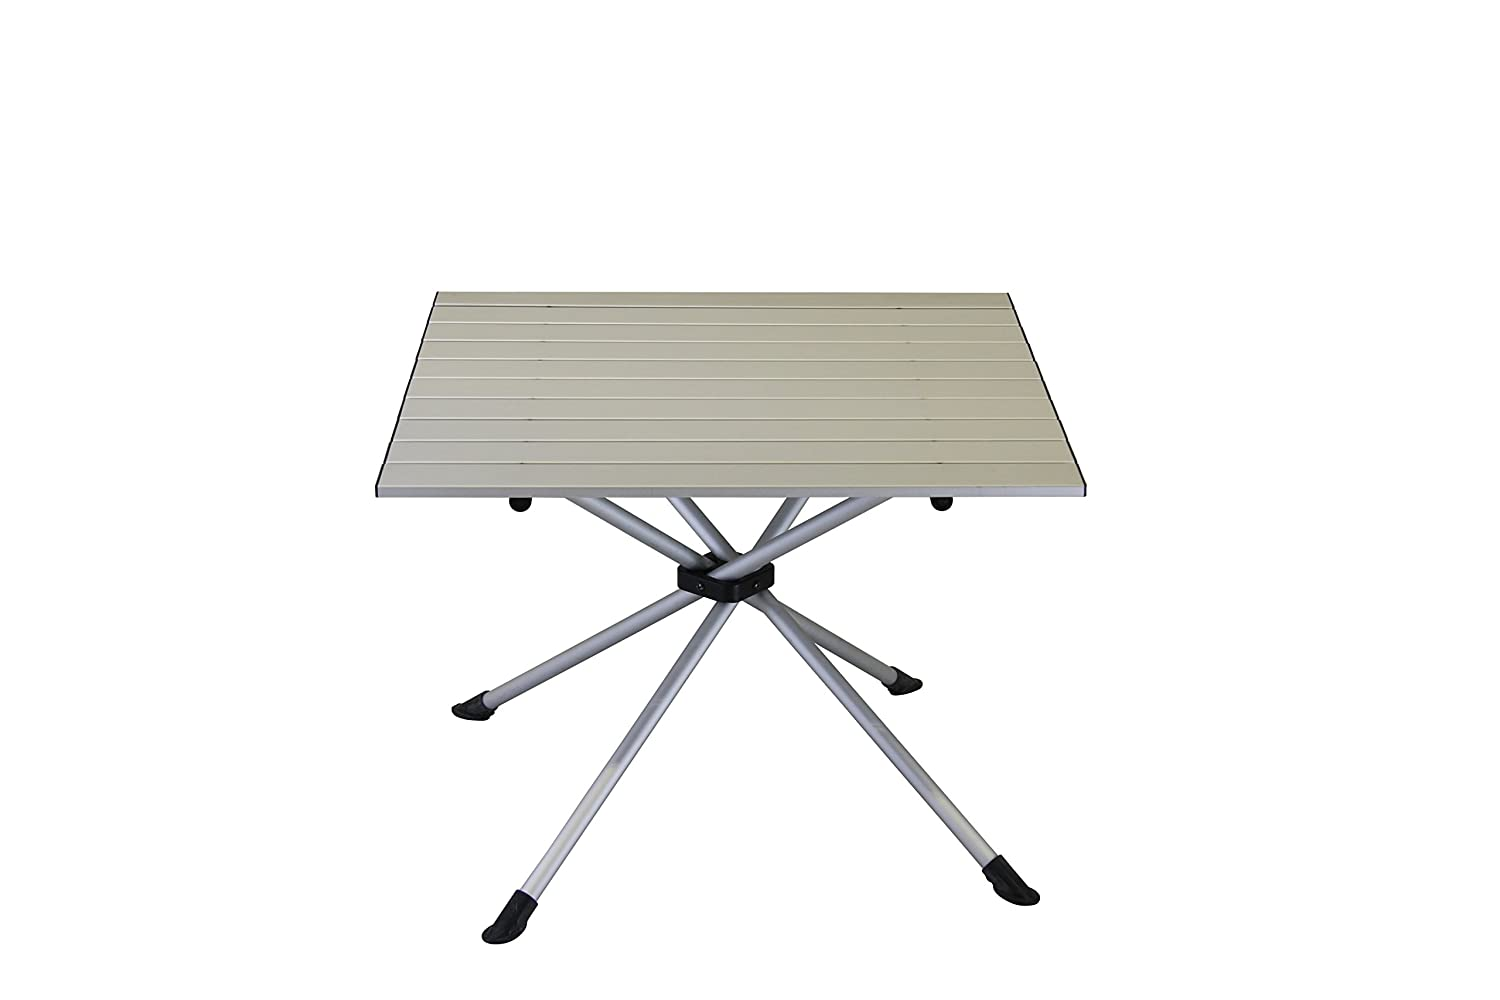 Portable Outdoor Foldable Camping Table - Lightweight and Easy to Assemble - Supports up to 30kg